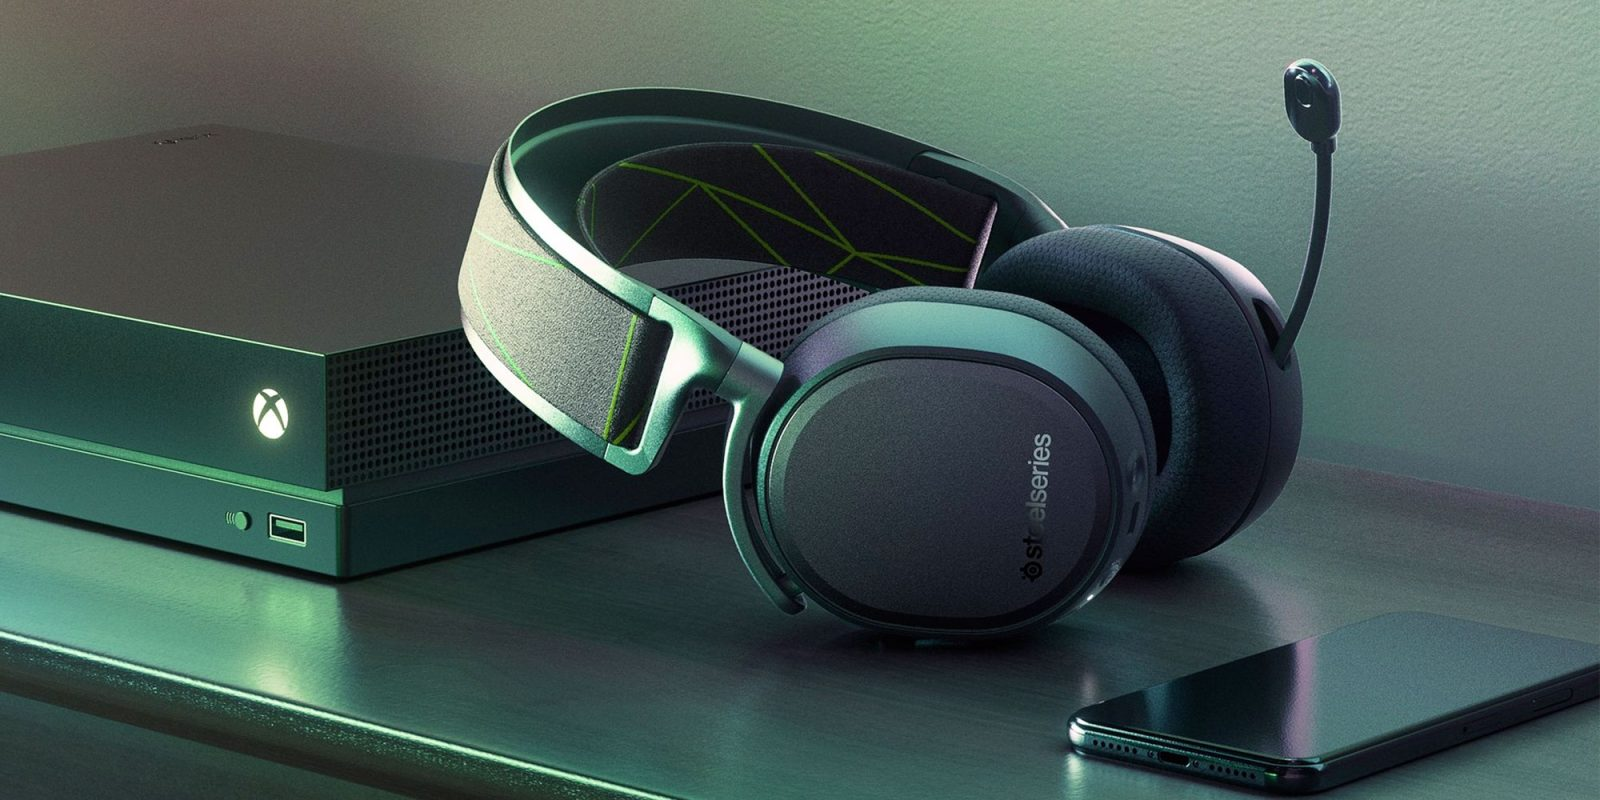 the latest 9d27d 33356 SteelSeries Arctis 9X wireless Xbox headset is here - 9to5Toys